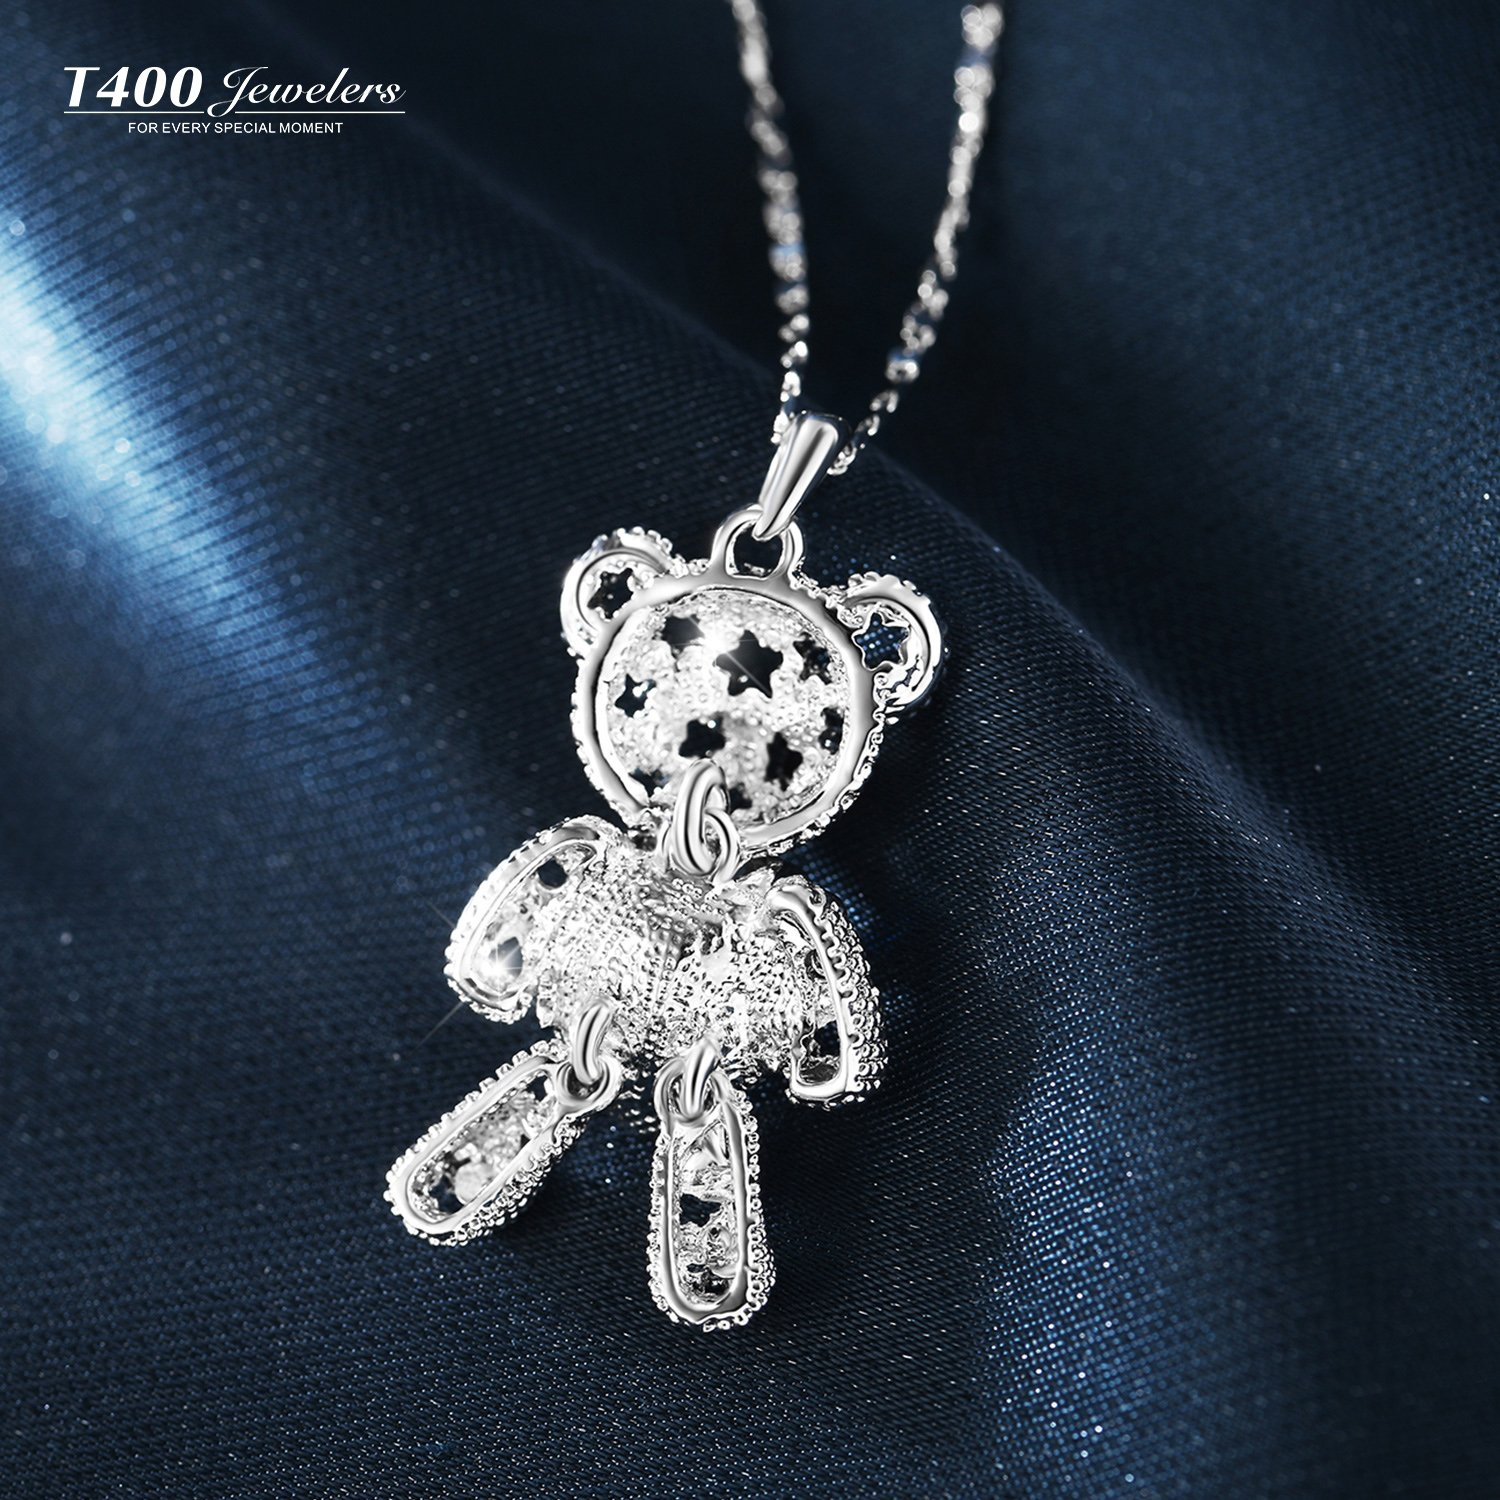 at gold white happy necklace id for j diamonds sale jewelry upload necklaces chopard pendant mobile teddy bear master